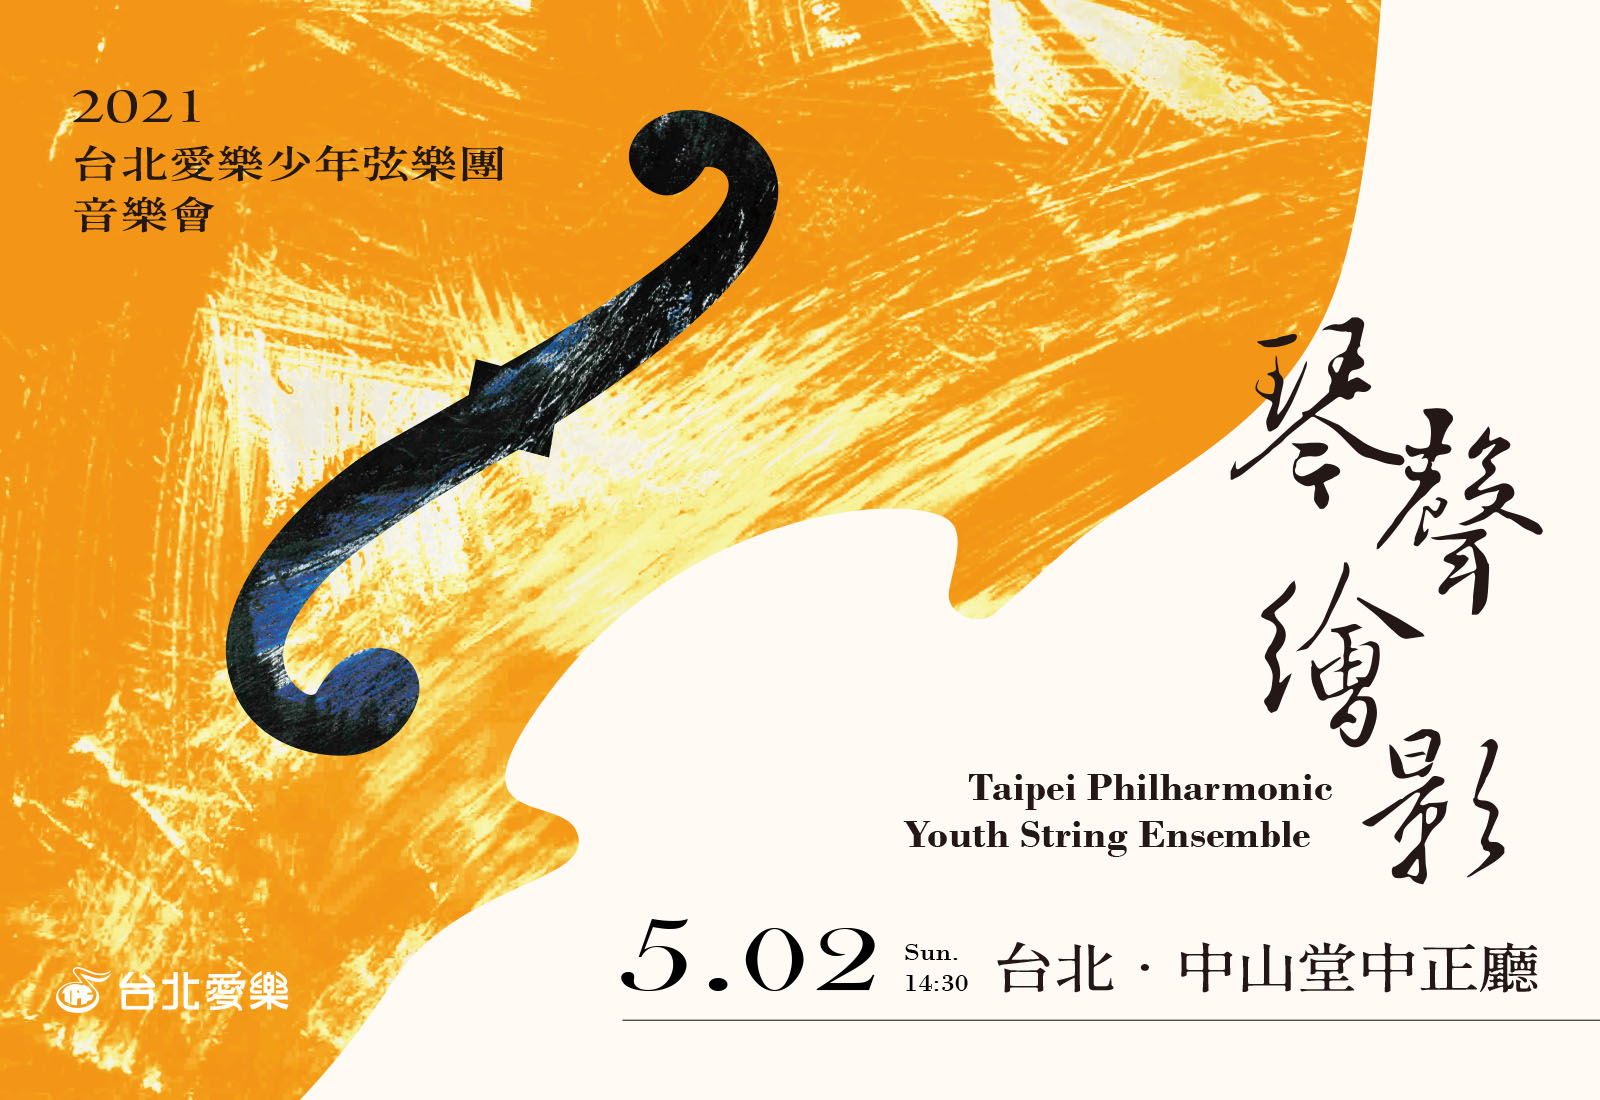 5/2 Movies in Concert-Taipei Philharmonic Youth String Ensemble